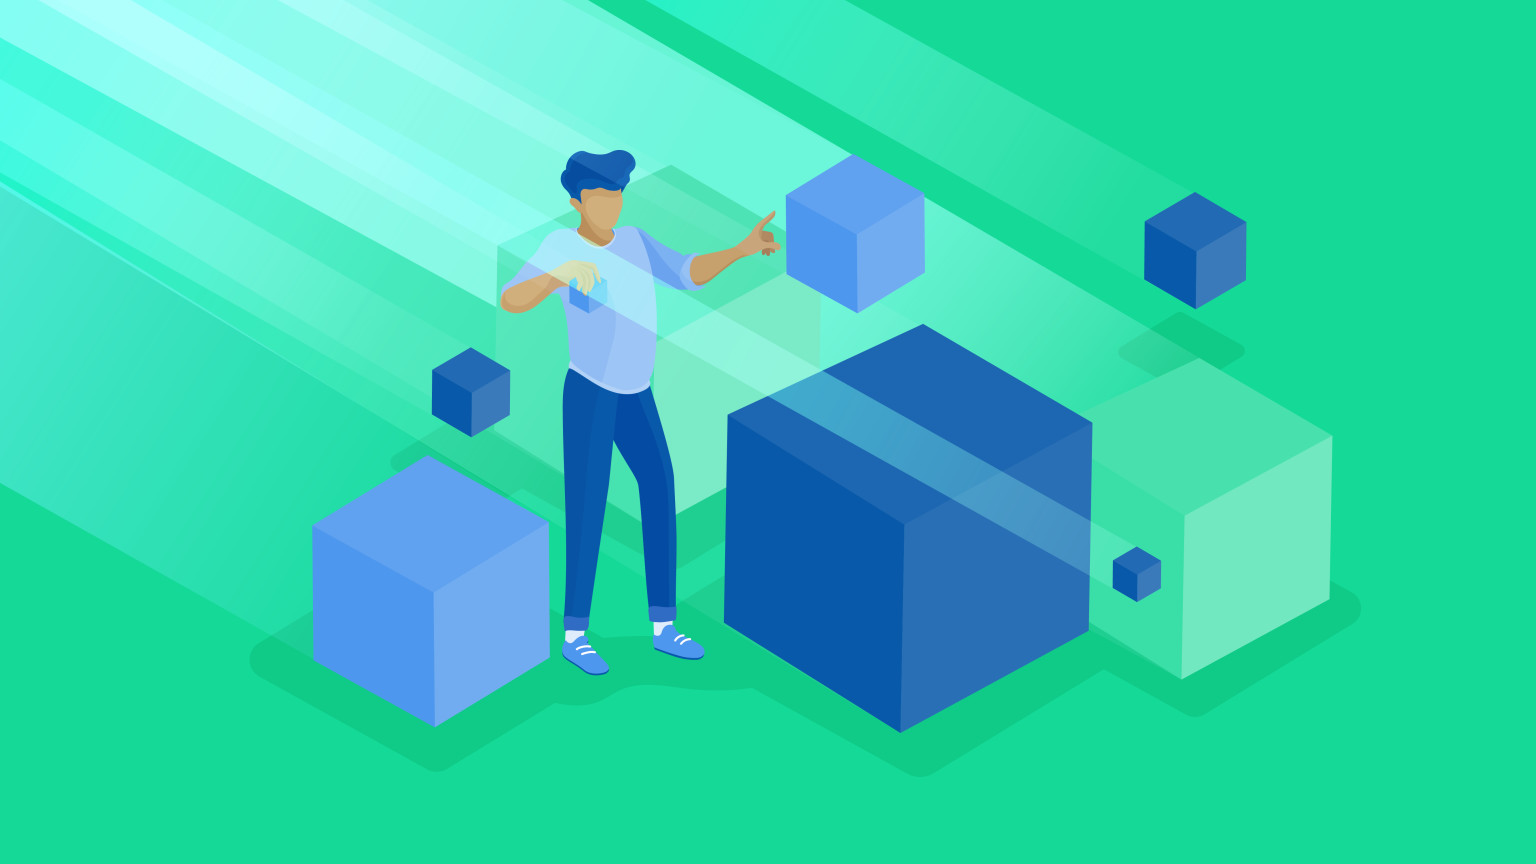 An illustration of a person manipulating cubes representing UI extensions.